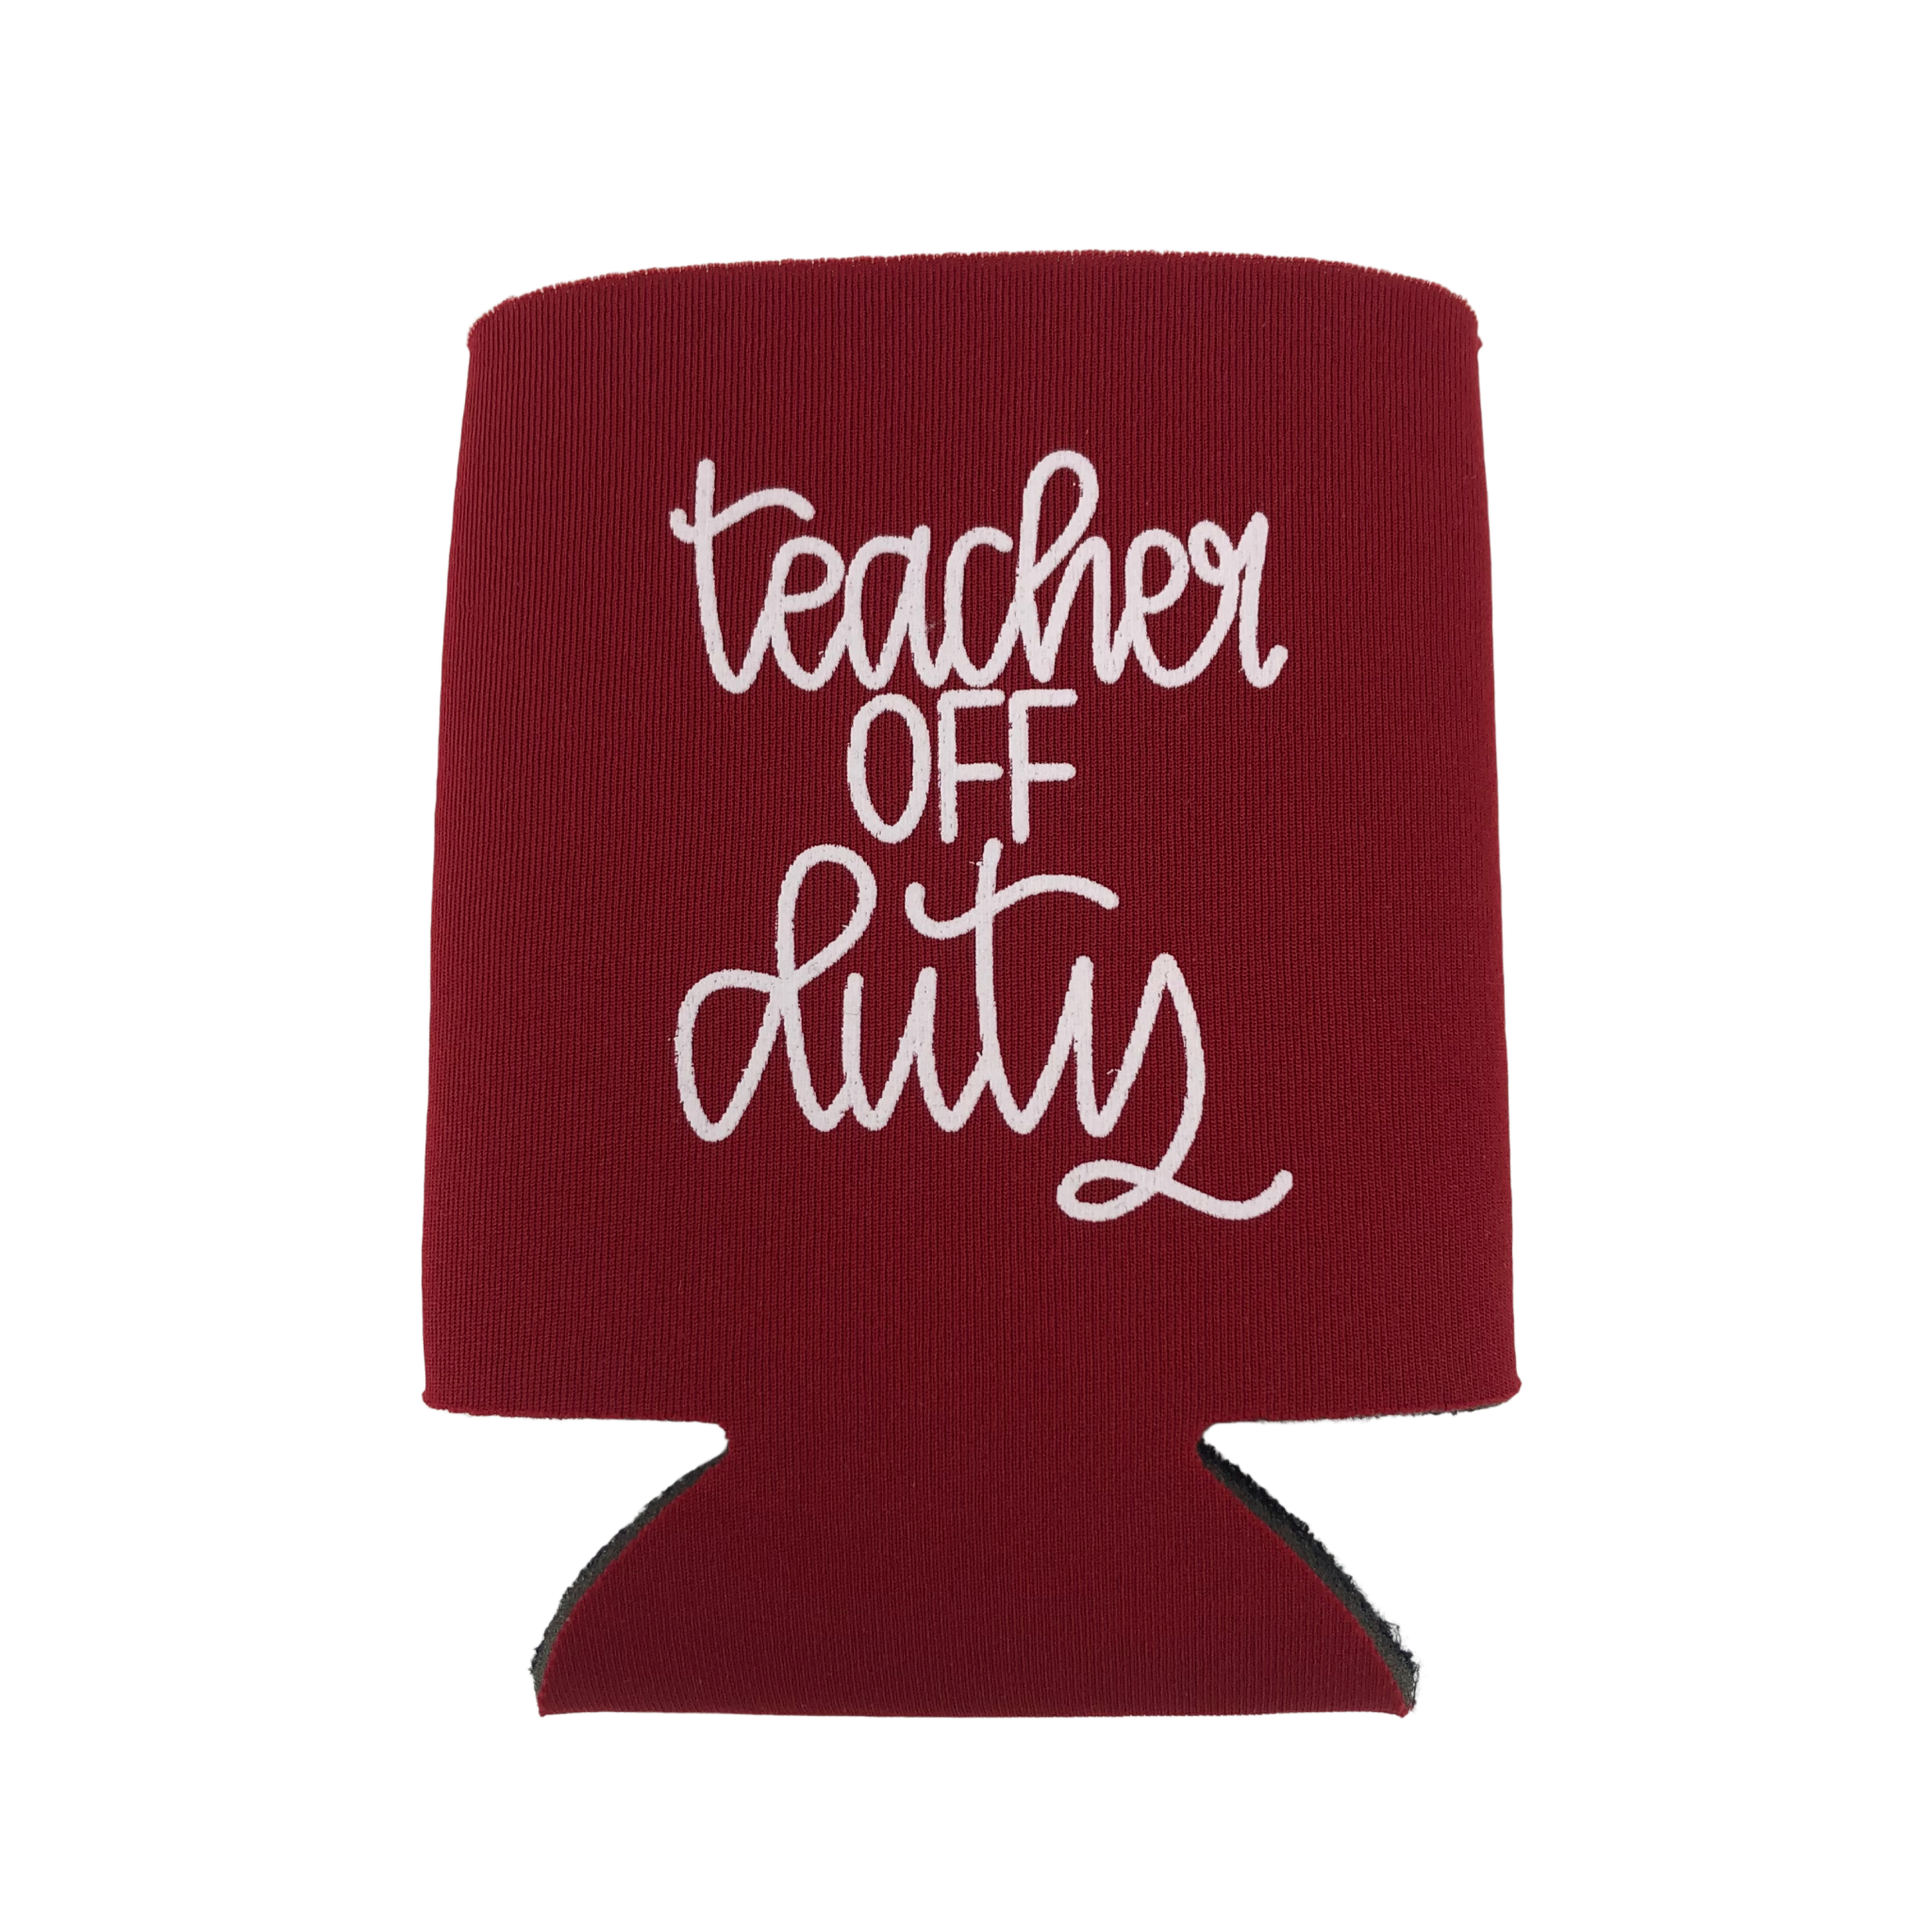 Lizzylovesletters Koozie Red Teacher